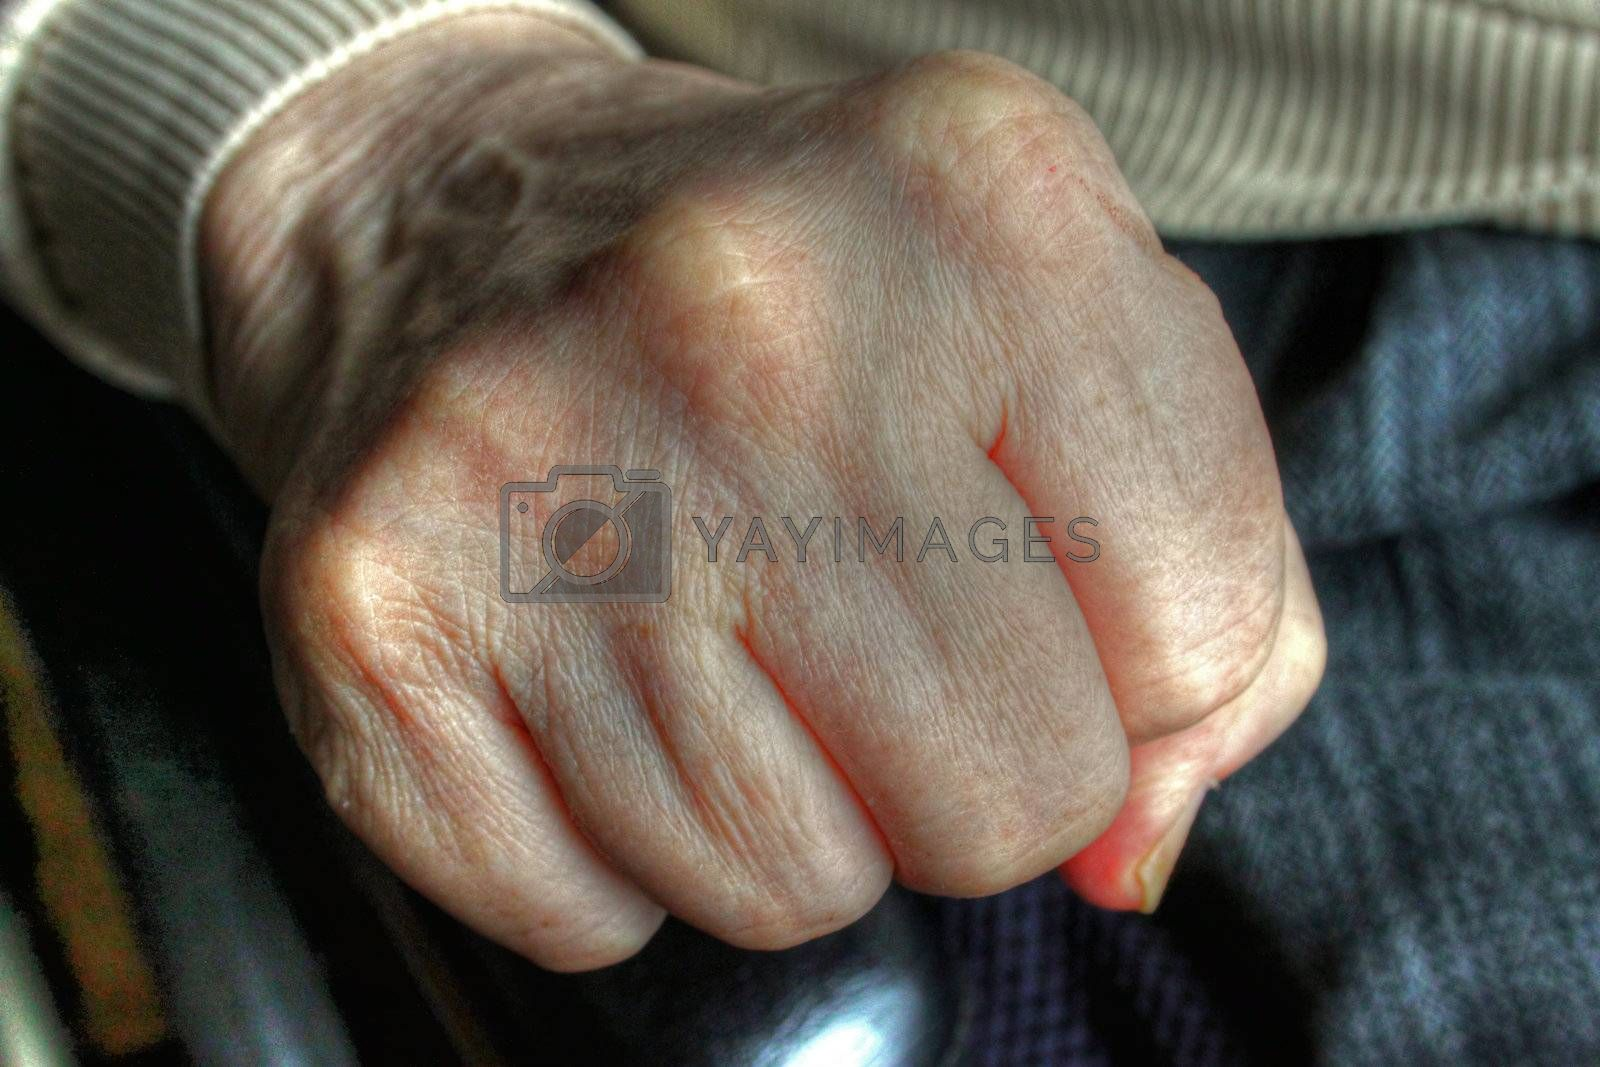 Elderly lady hand making a fist showing knuckles